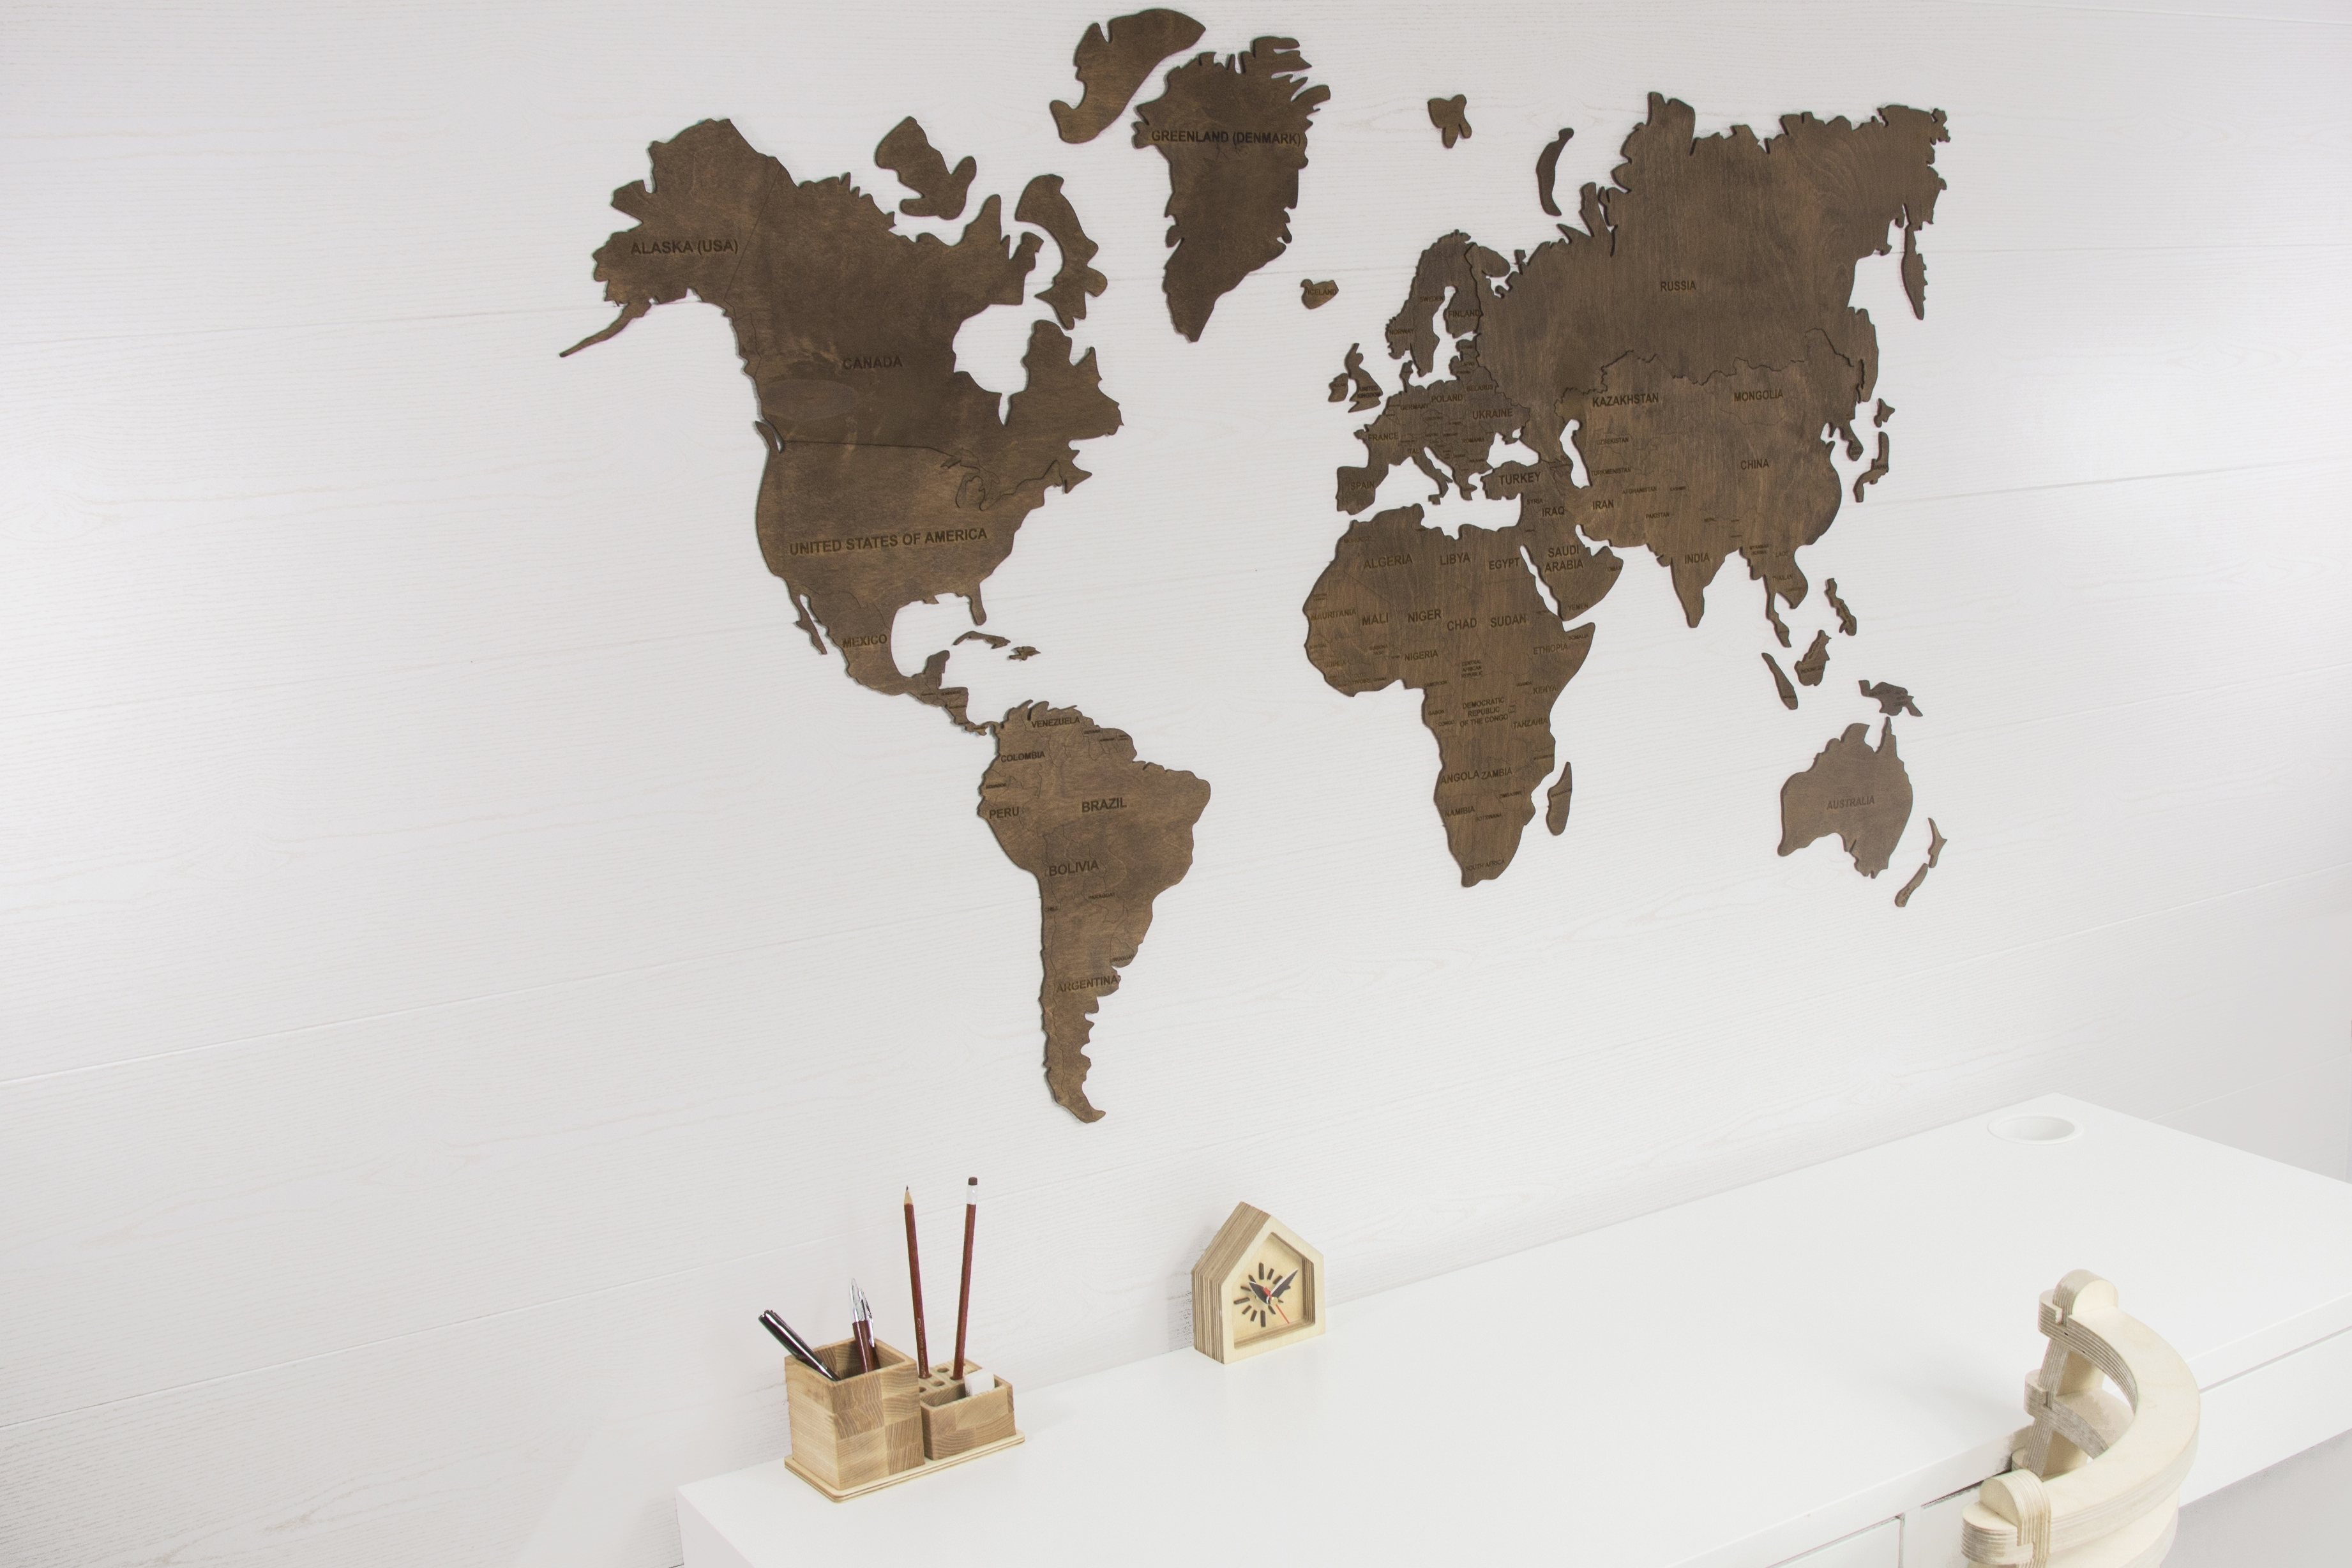 World Map Wall, World Map Hanging, World Map Wooden, World Map Wood Inside Map Of The World Wall Art (Photo 12 of 20)